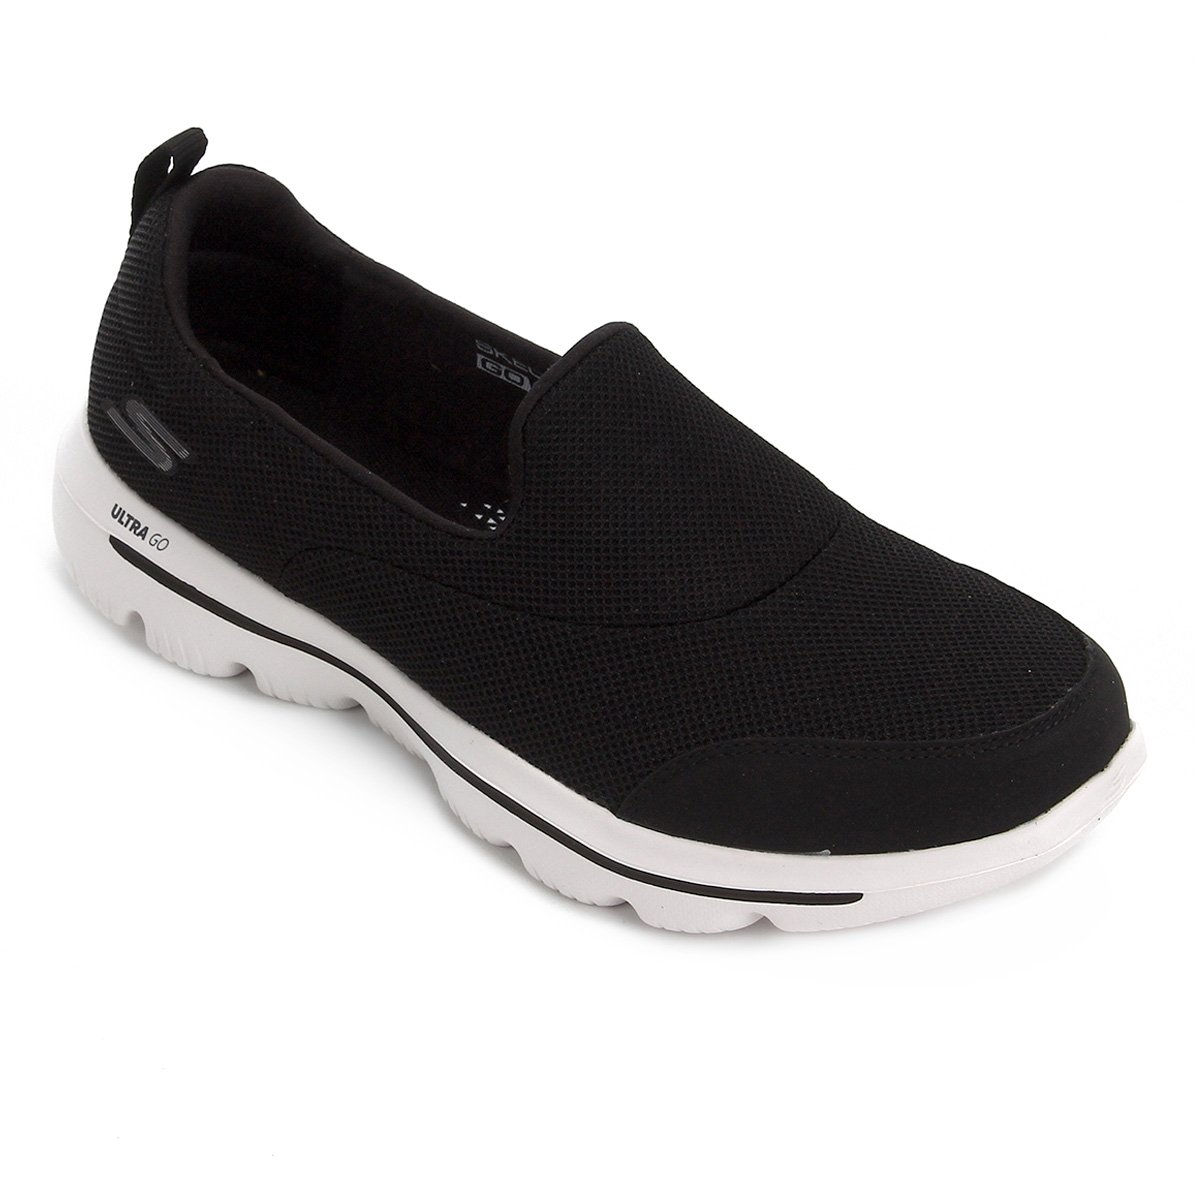 8c4a1a6f5 Tênis Skechers Go Walk Evolution Ultra-Reach Feminino - Preto e Branco